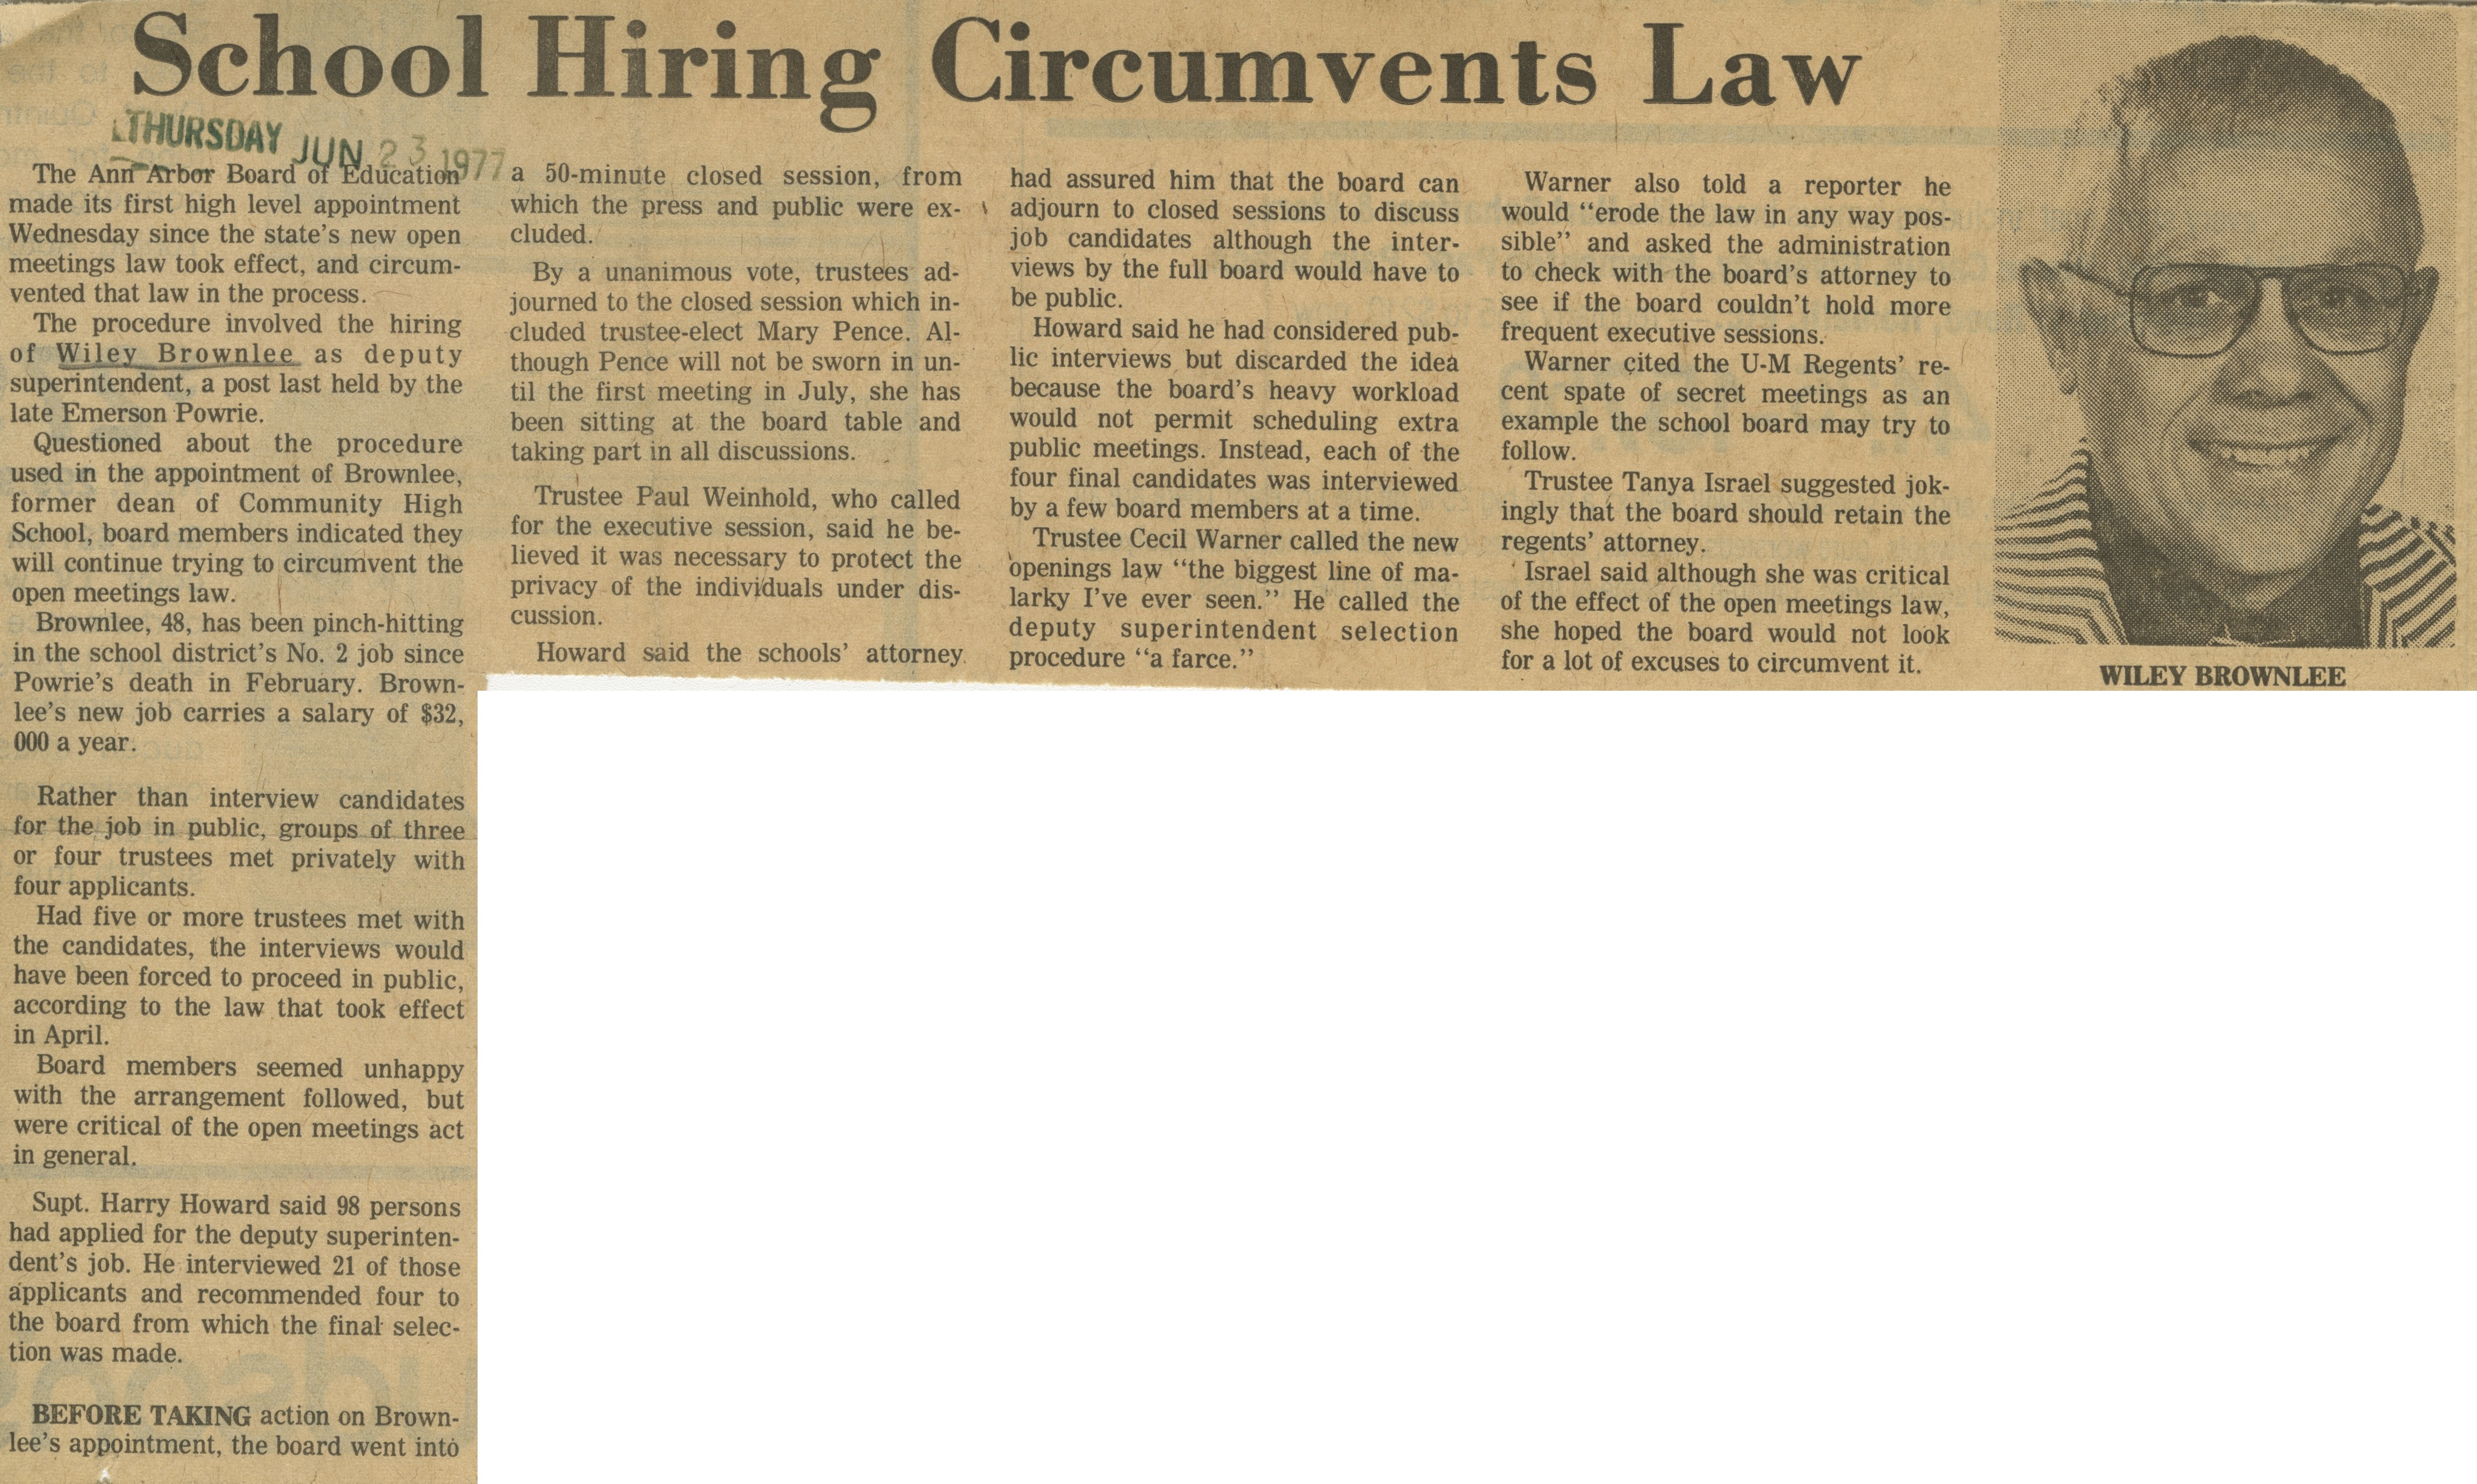 School Hiring Circumvents Law image